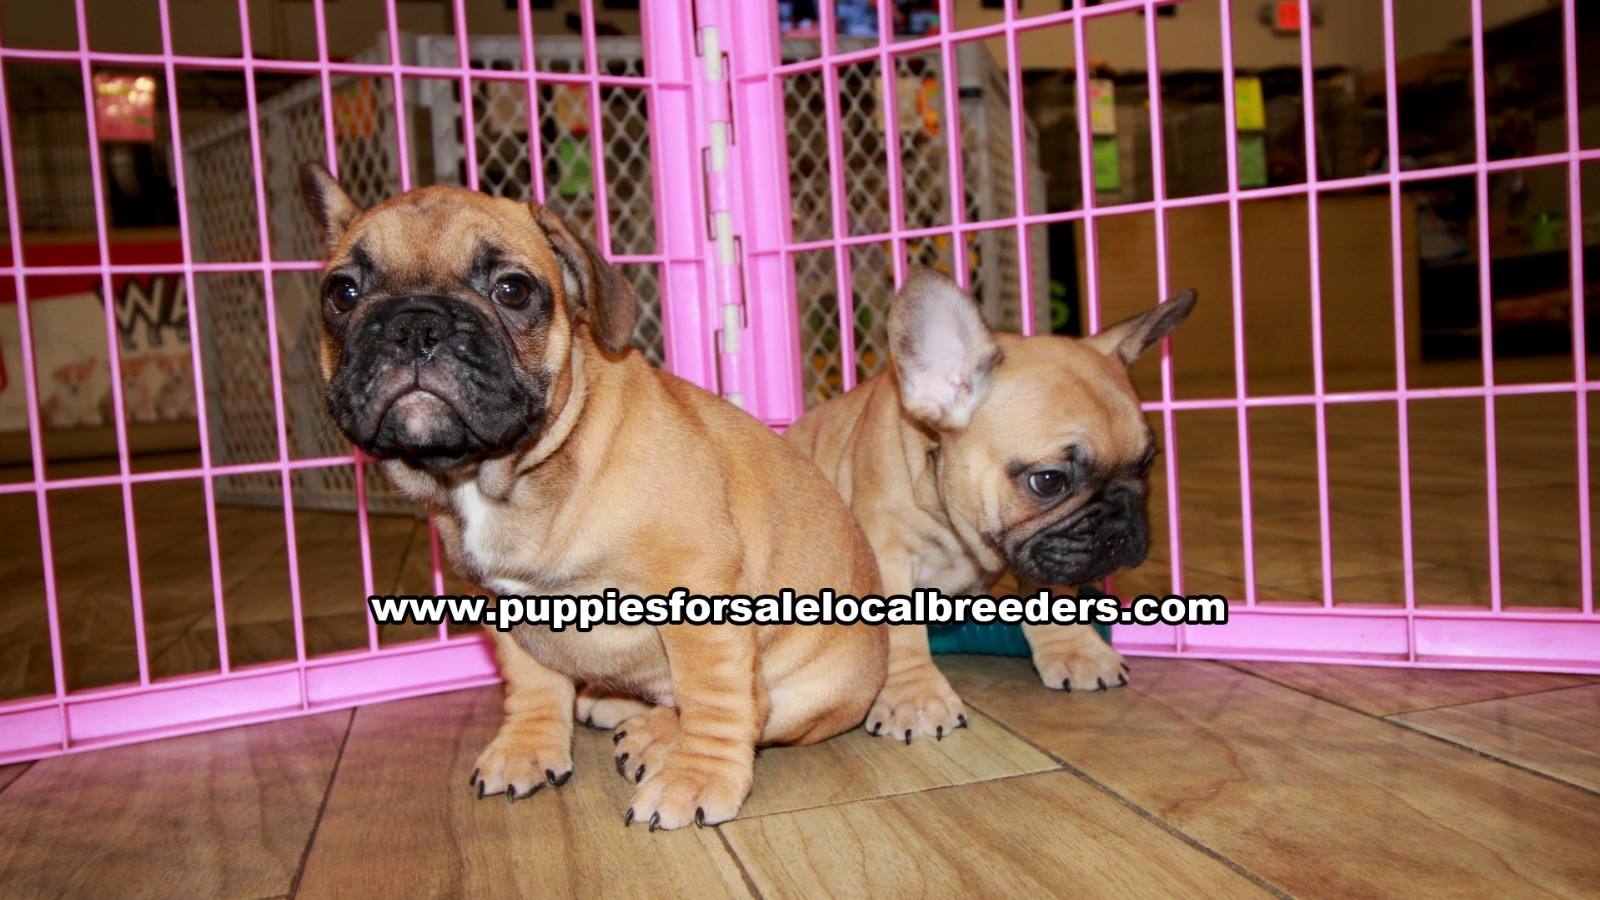 Fawn French Bulldog, Puppies For Sale In Georgia, Local Breeders, Near Atlanta, Ga